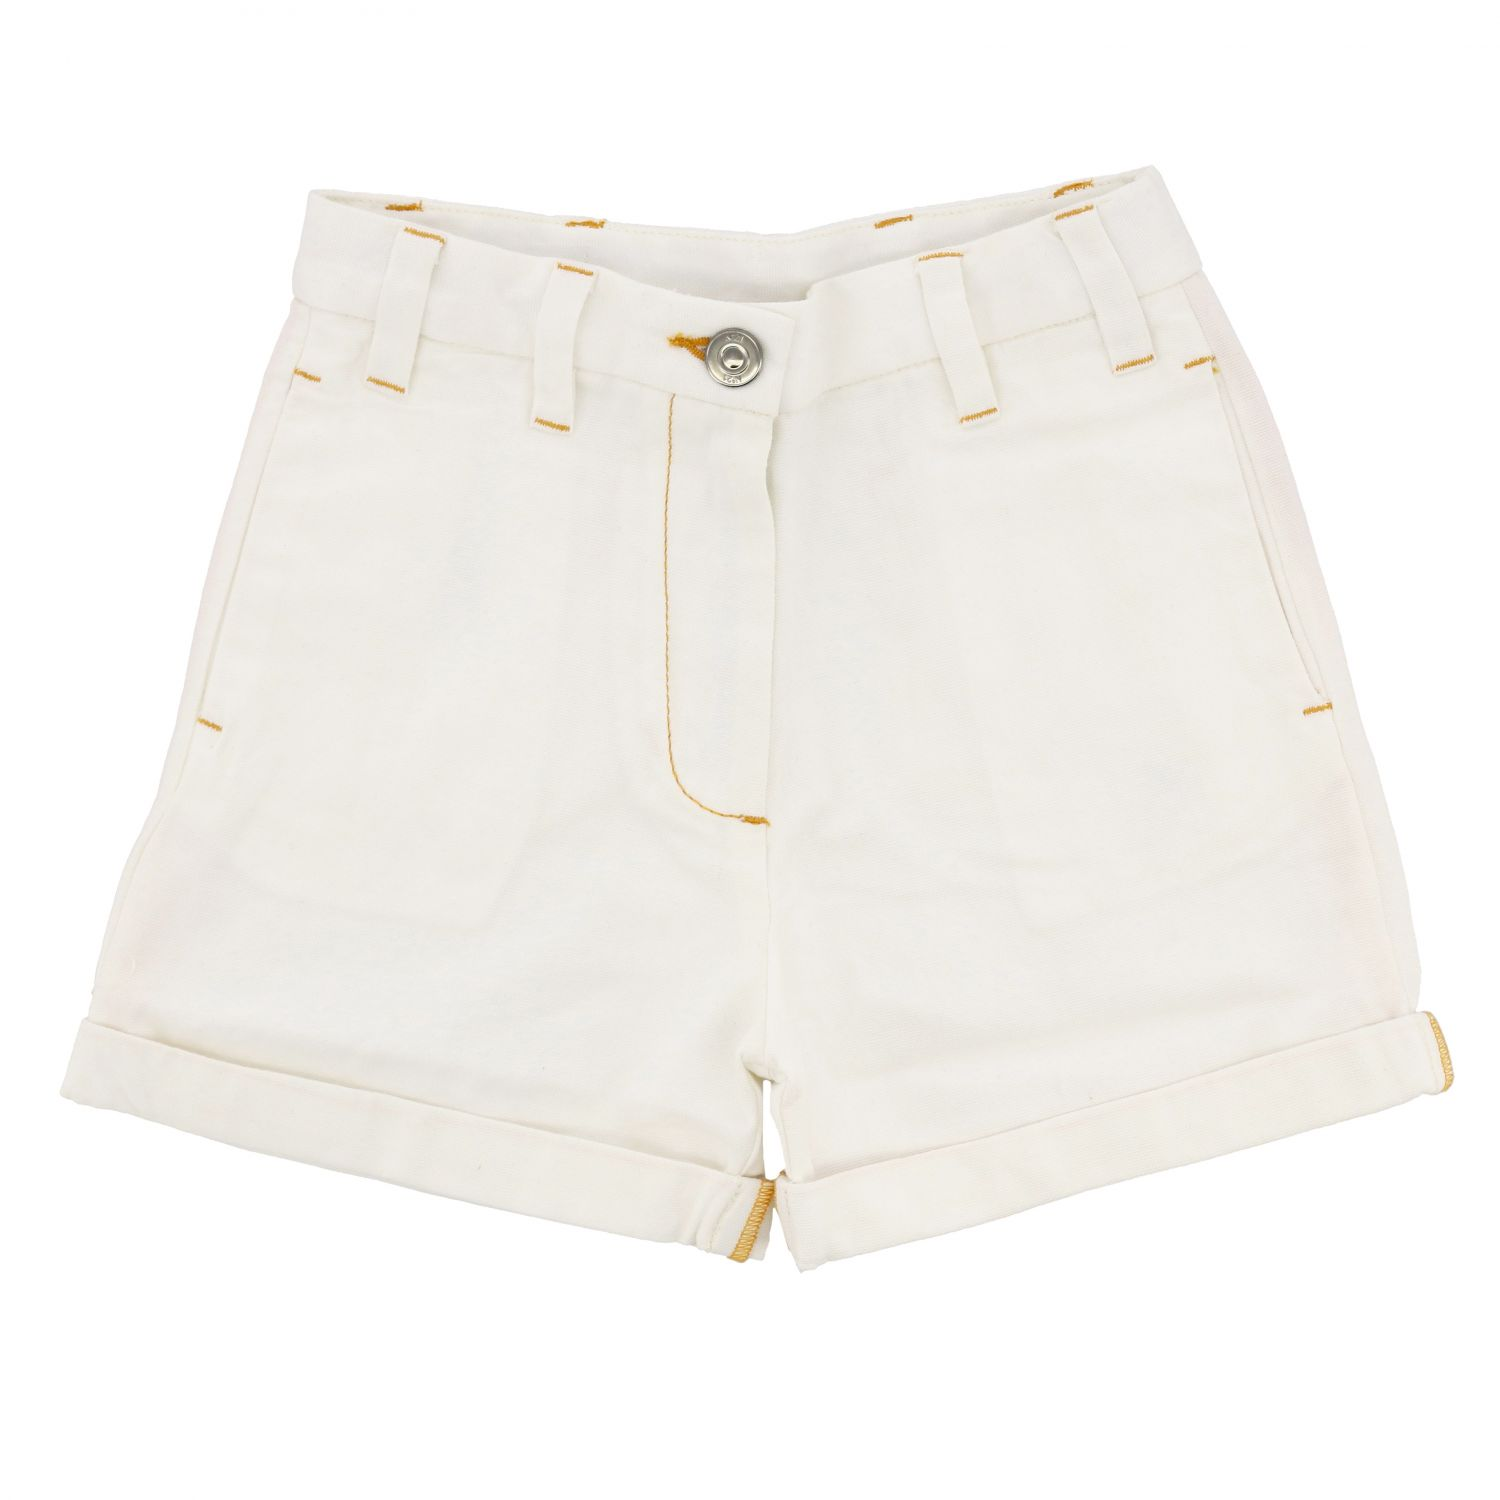 Shorts kids N° 21 white 1